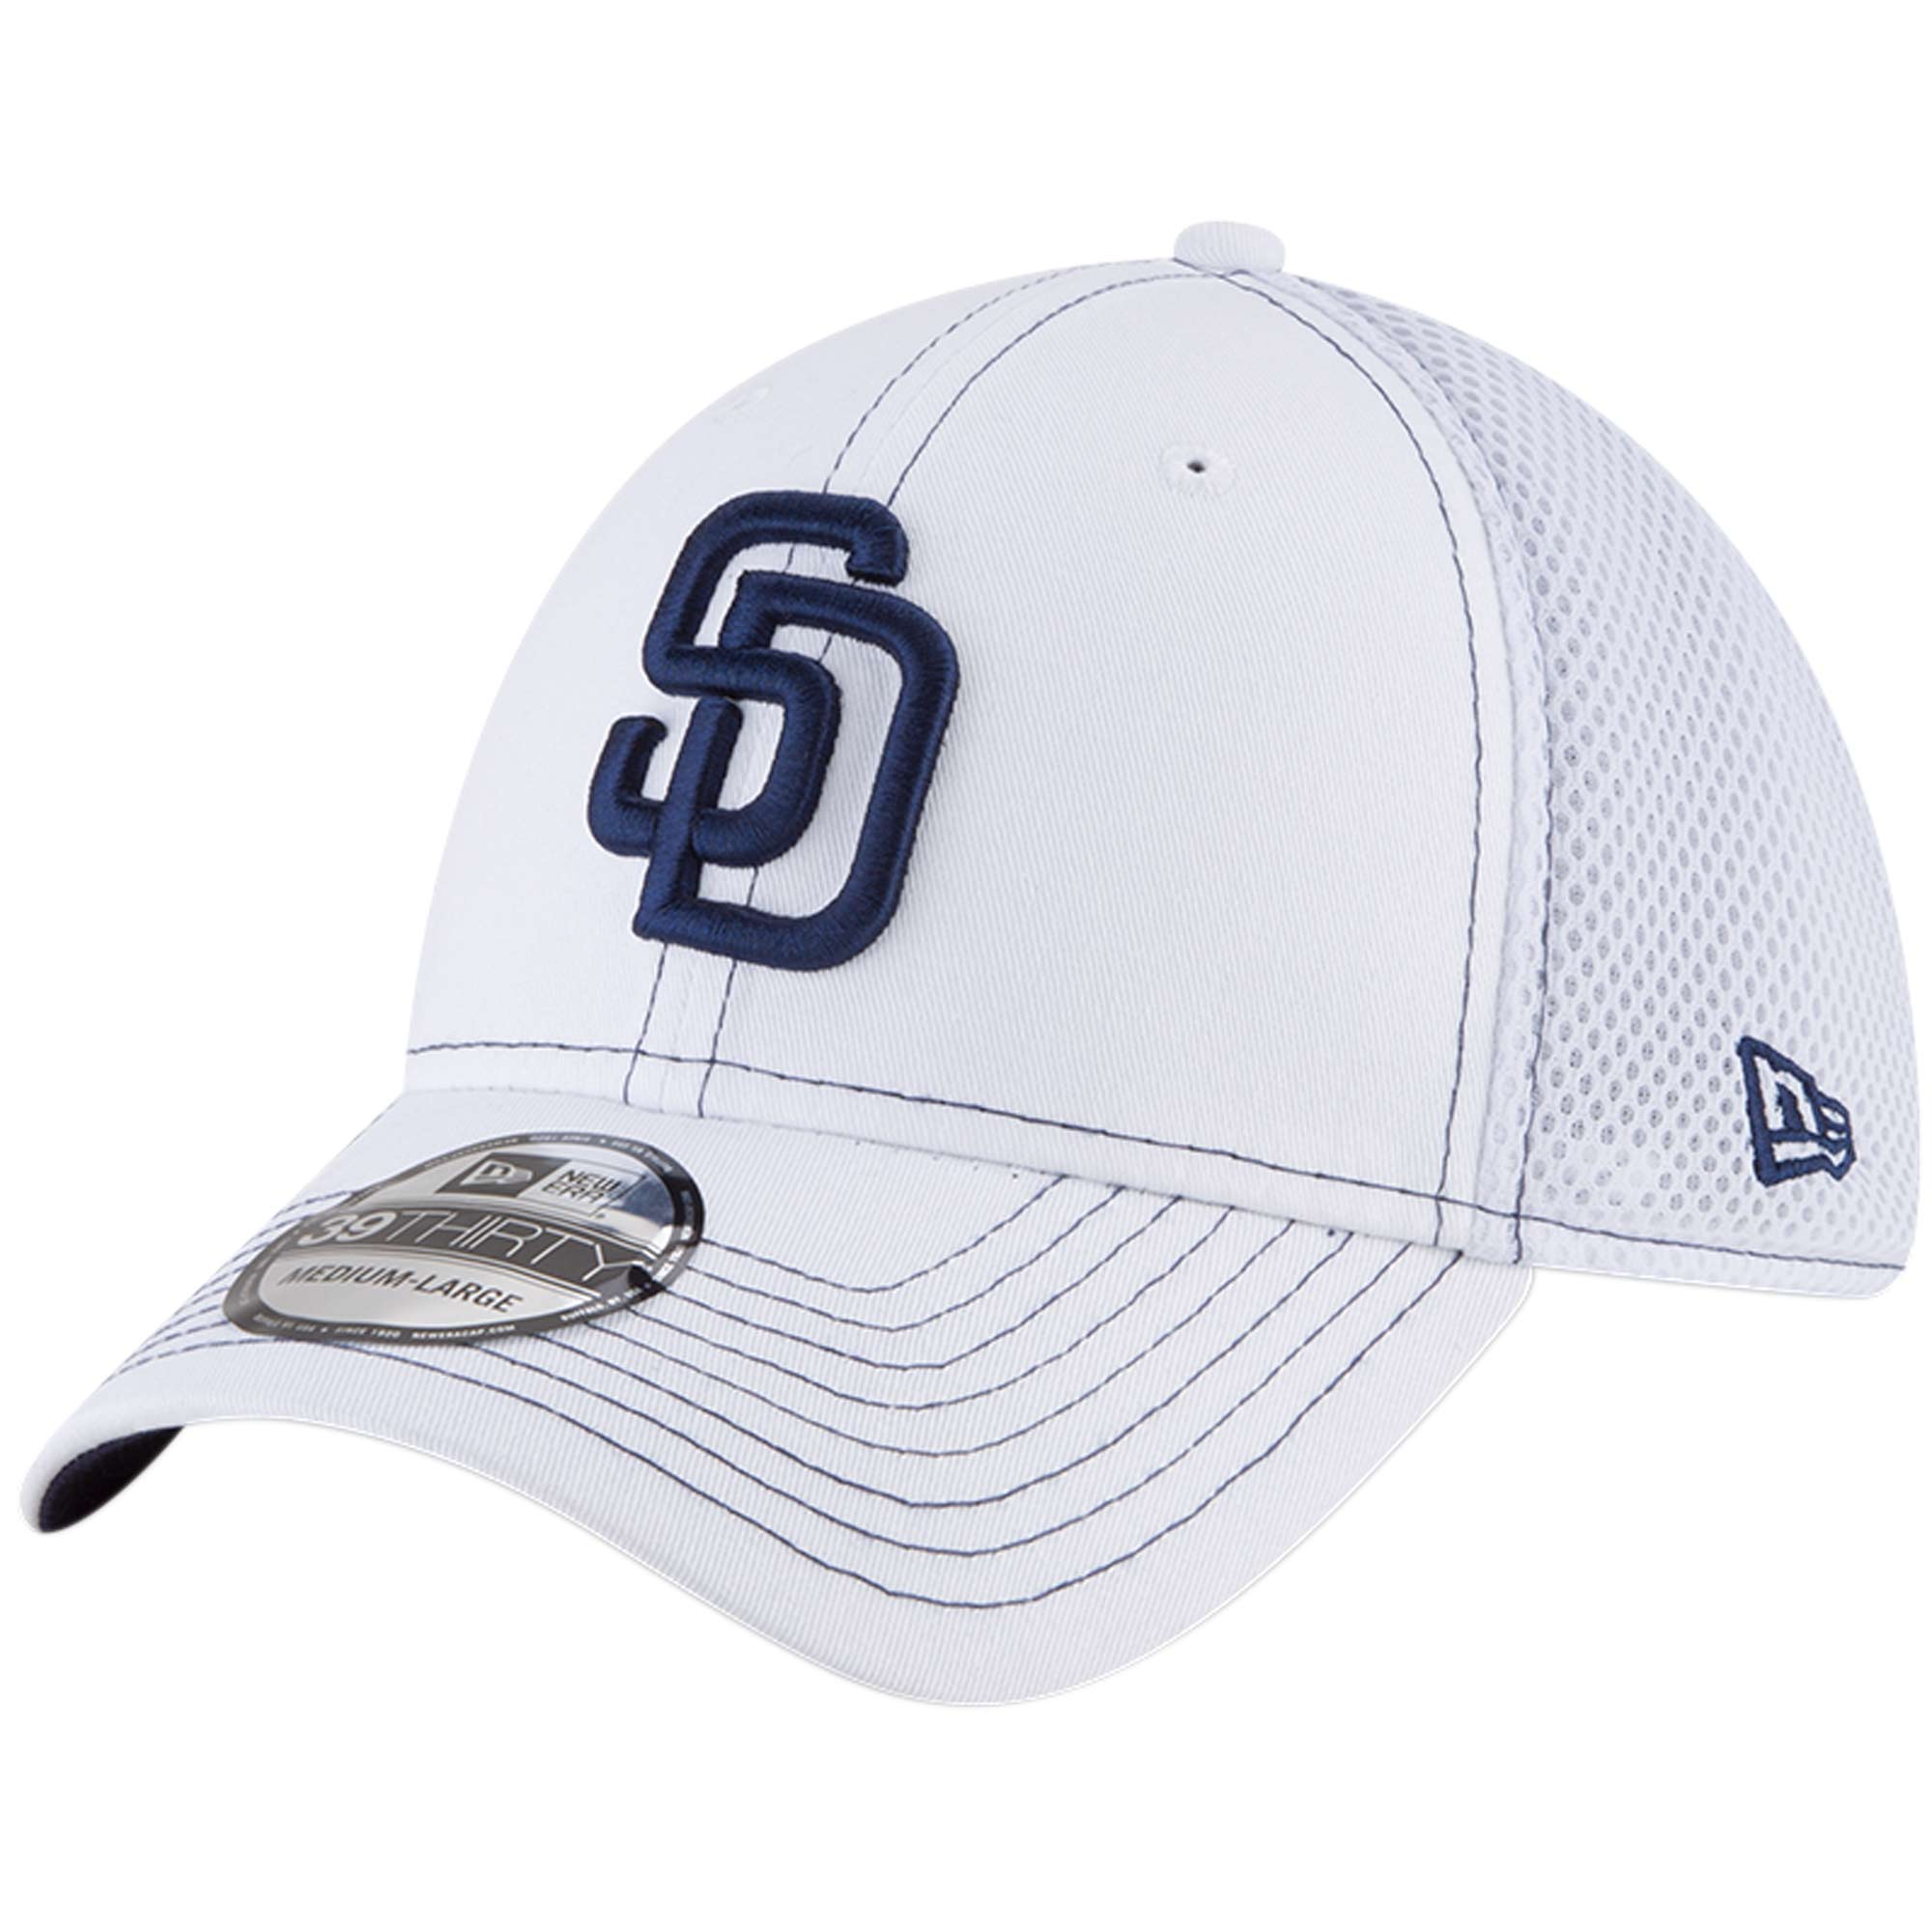 San Diego Padres New Era Team Turn Neo 39THIRTY Flex Hat - White